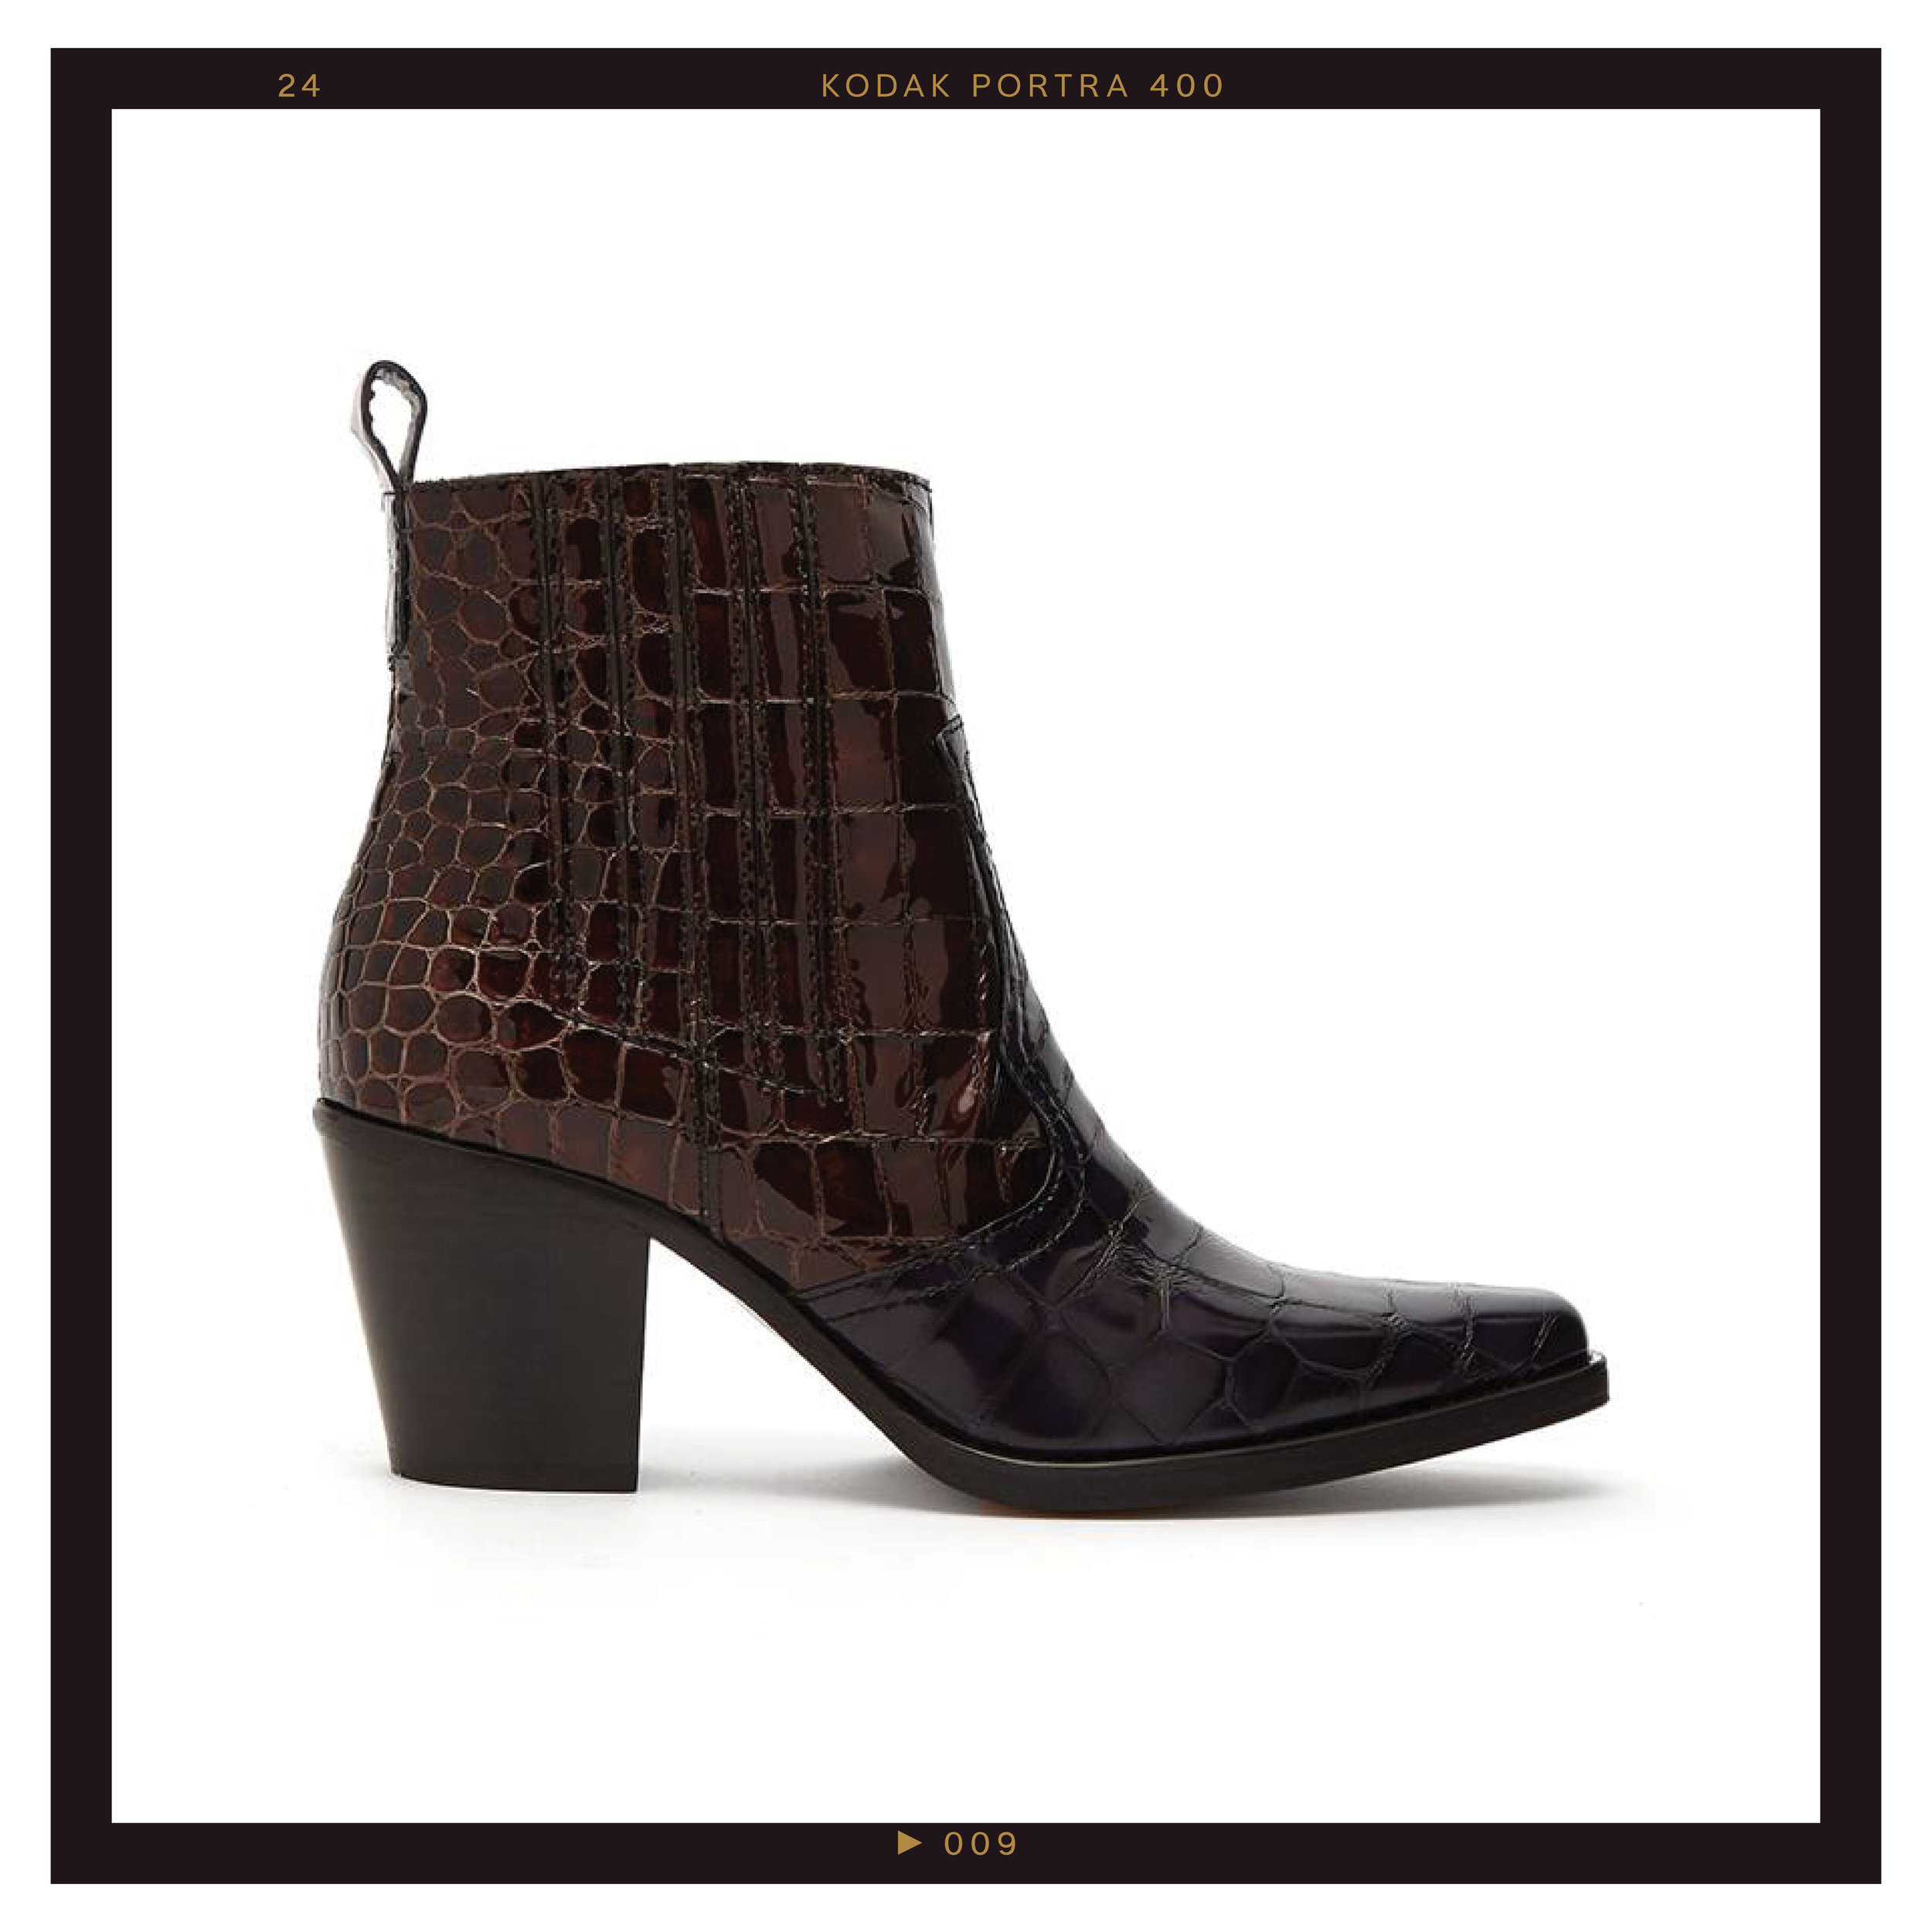 Ganni Callie Crocodile-Effect Patent-Leather Ankle Boots, $429